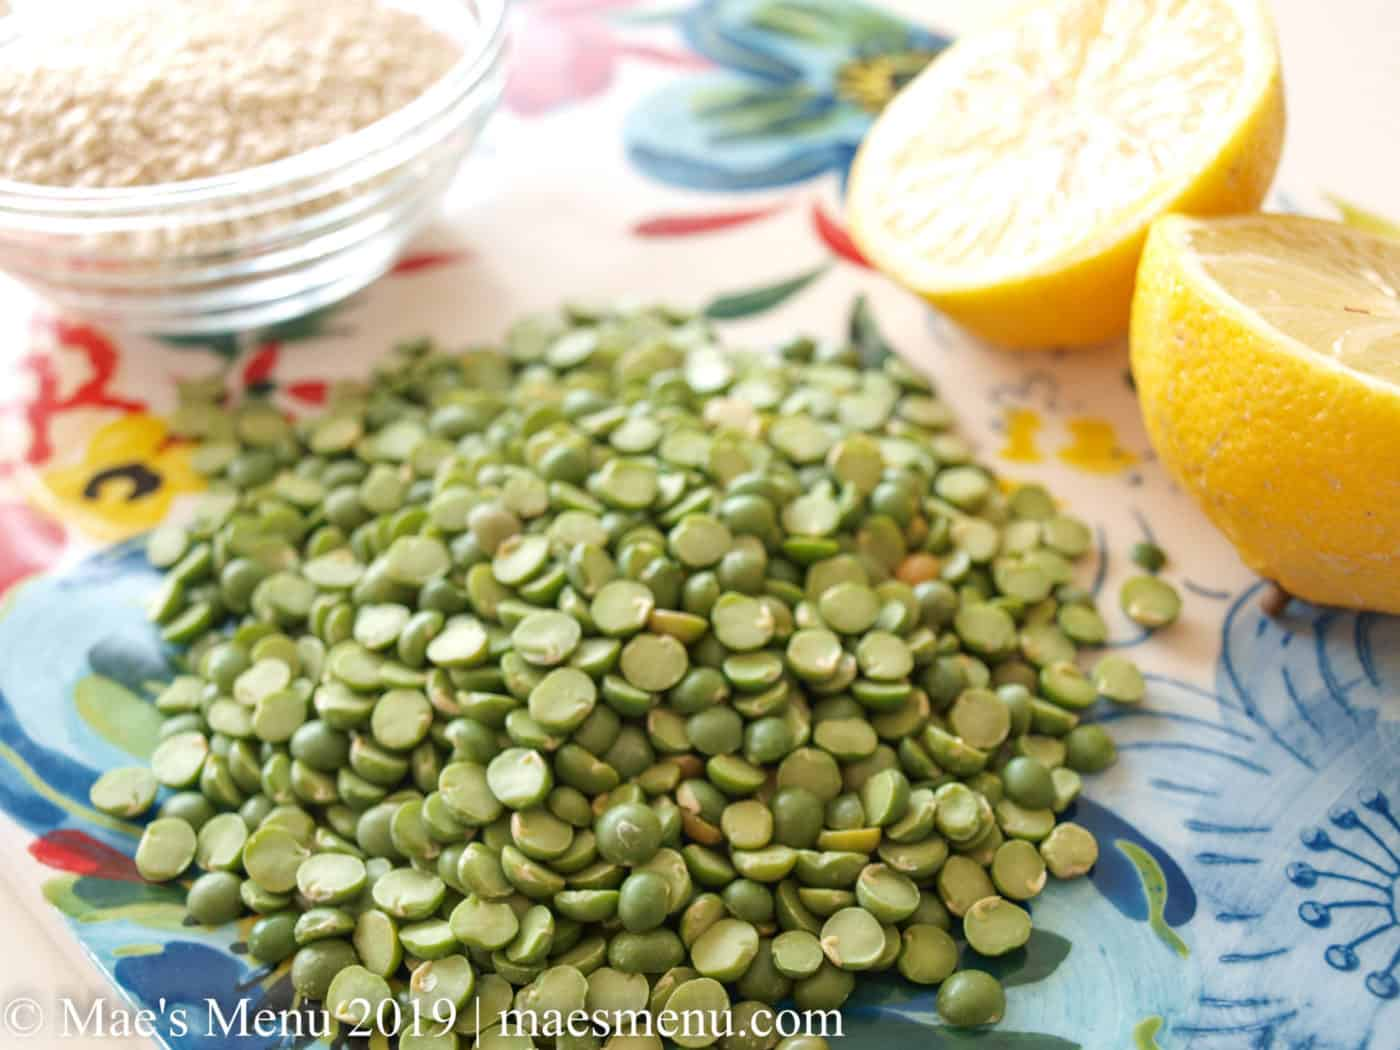 Dried split green peas, 1 lemon cut it half, and a small dish of sesame seeds on a flowered cutting board.